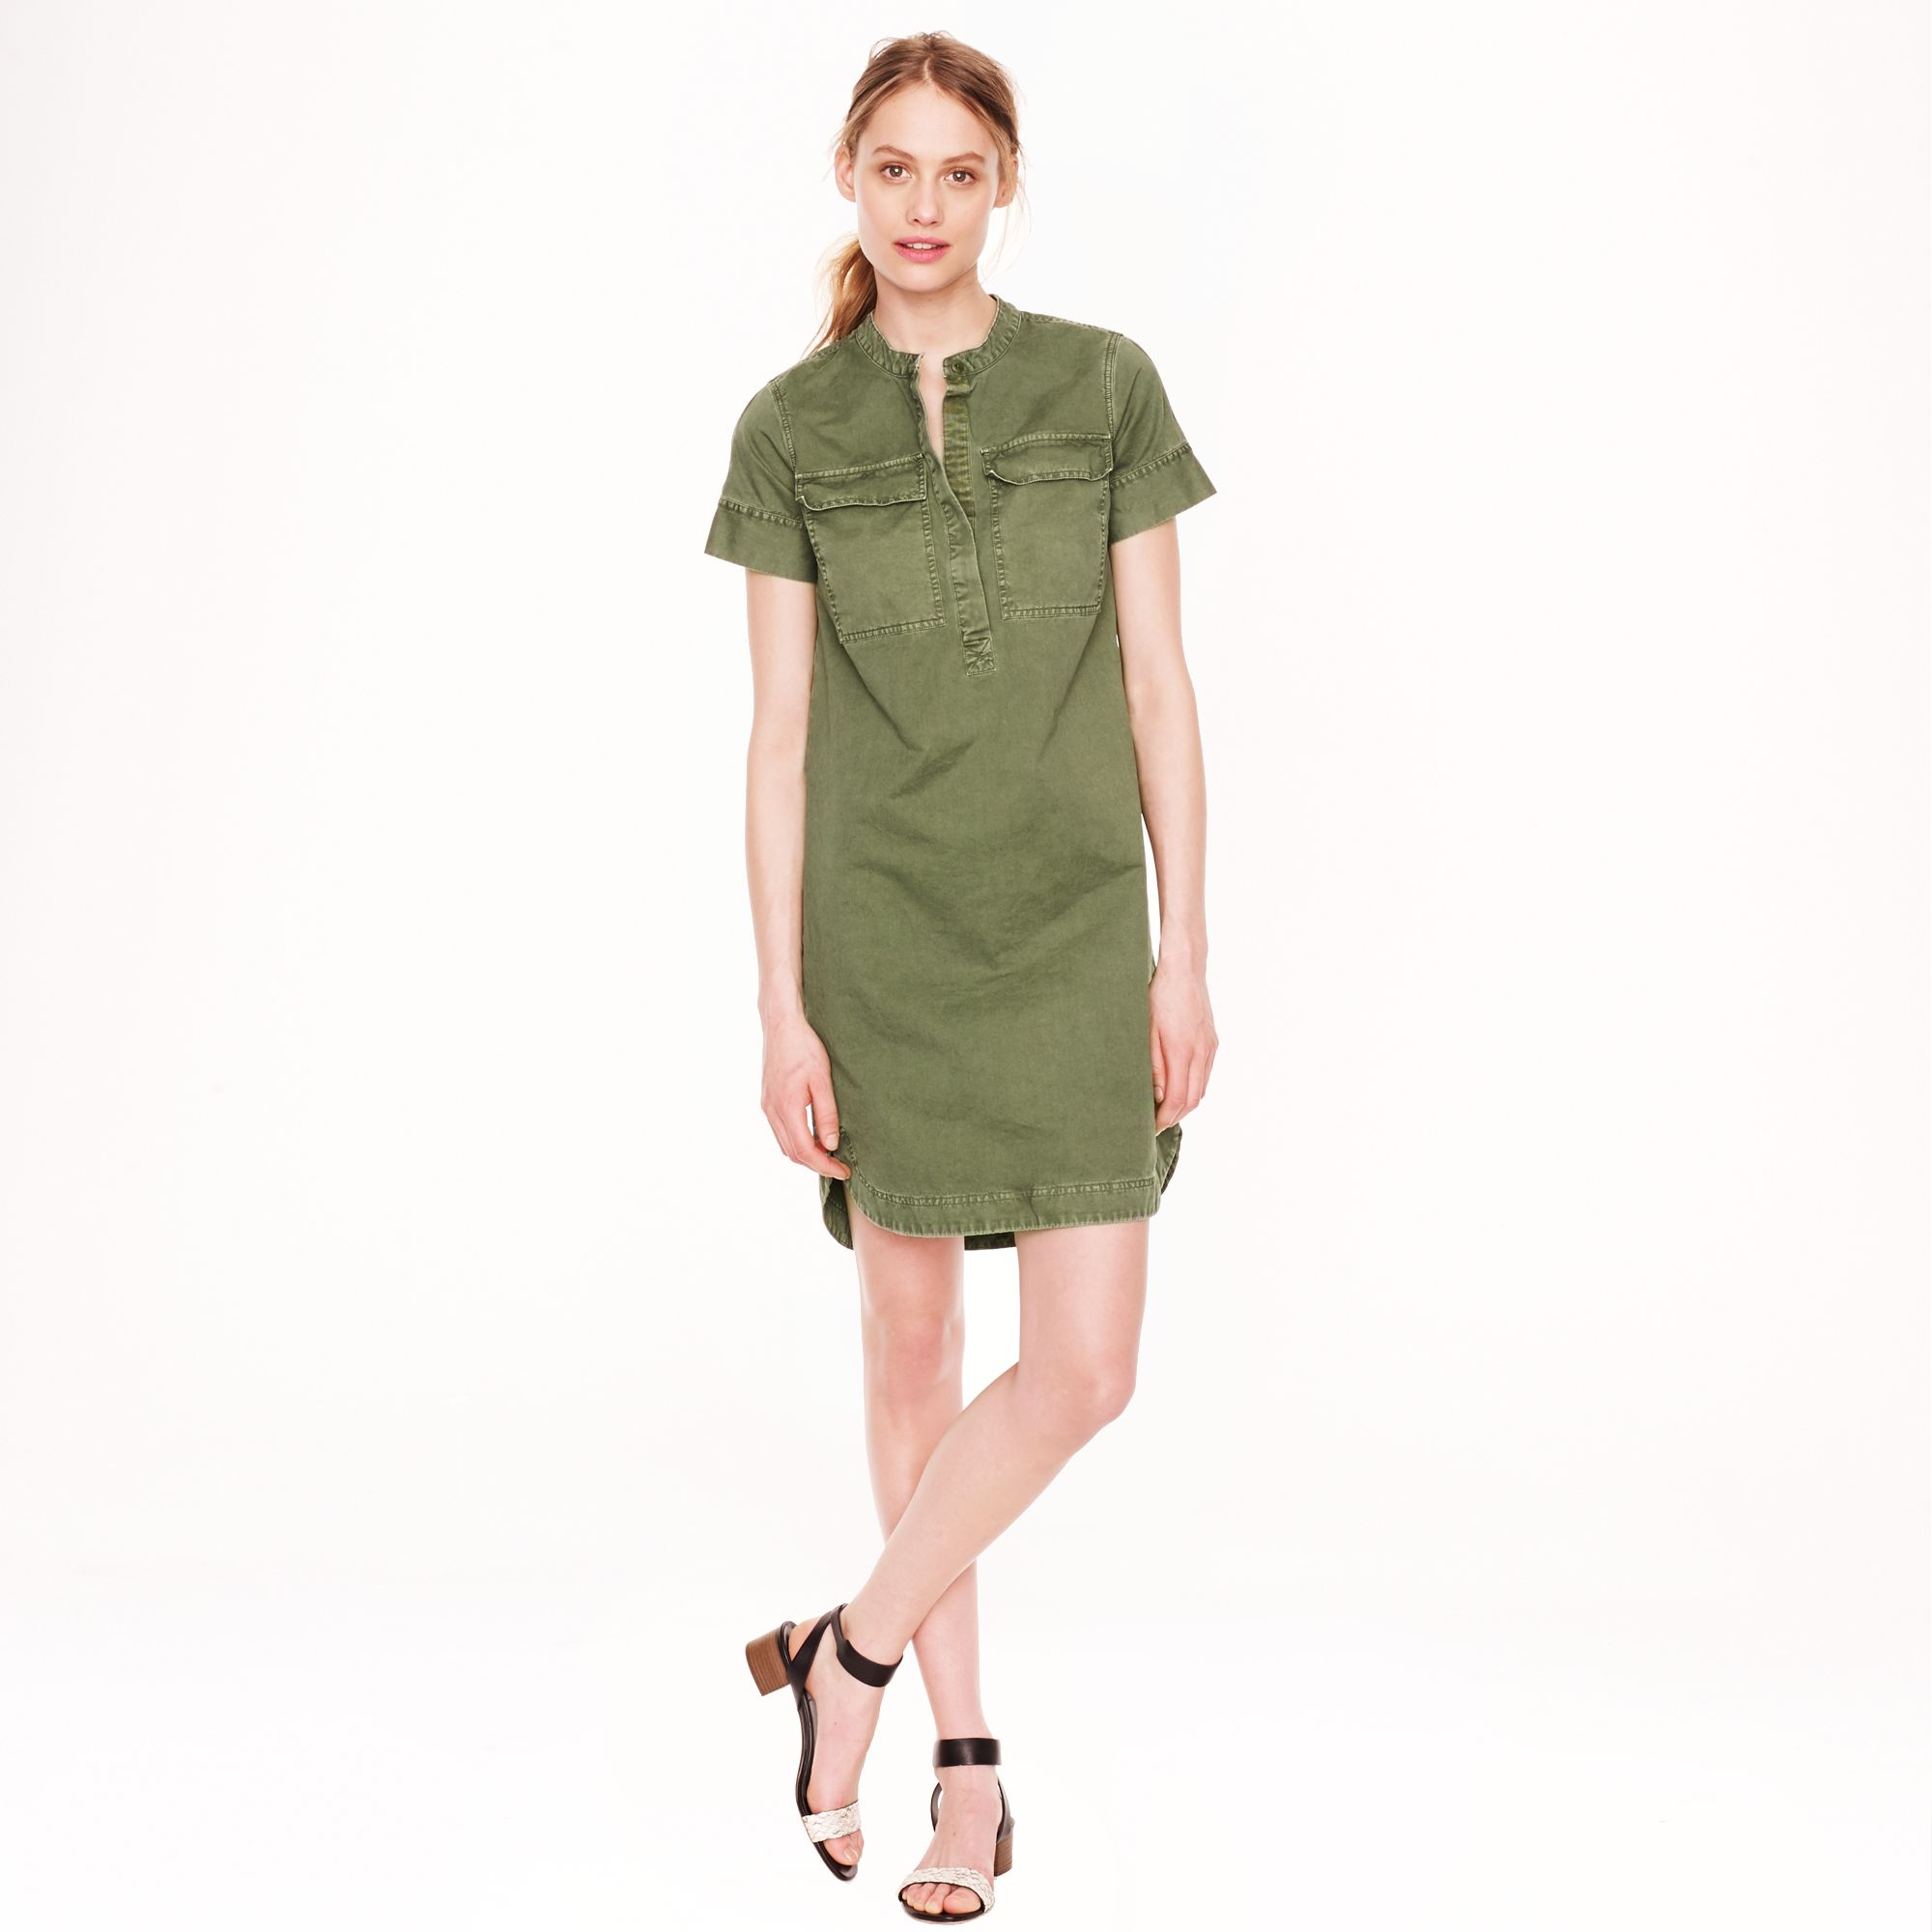 J.crew Military Shirtdress in Green